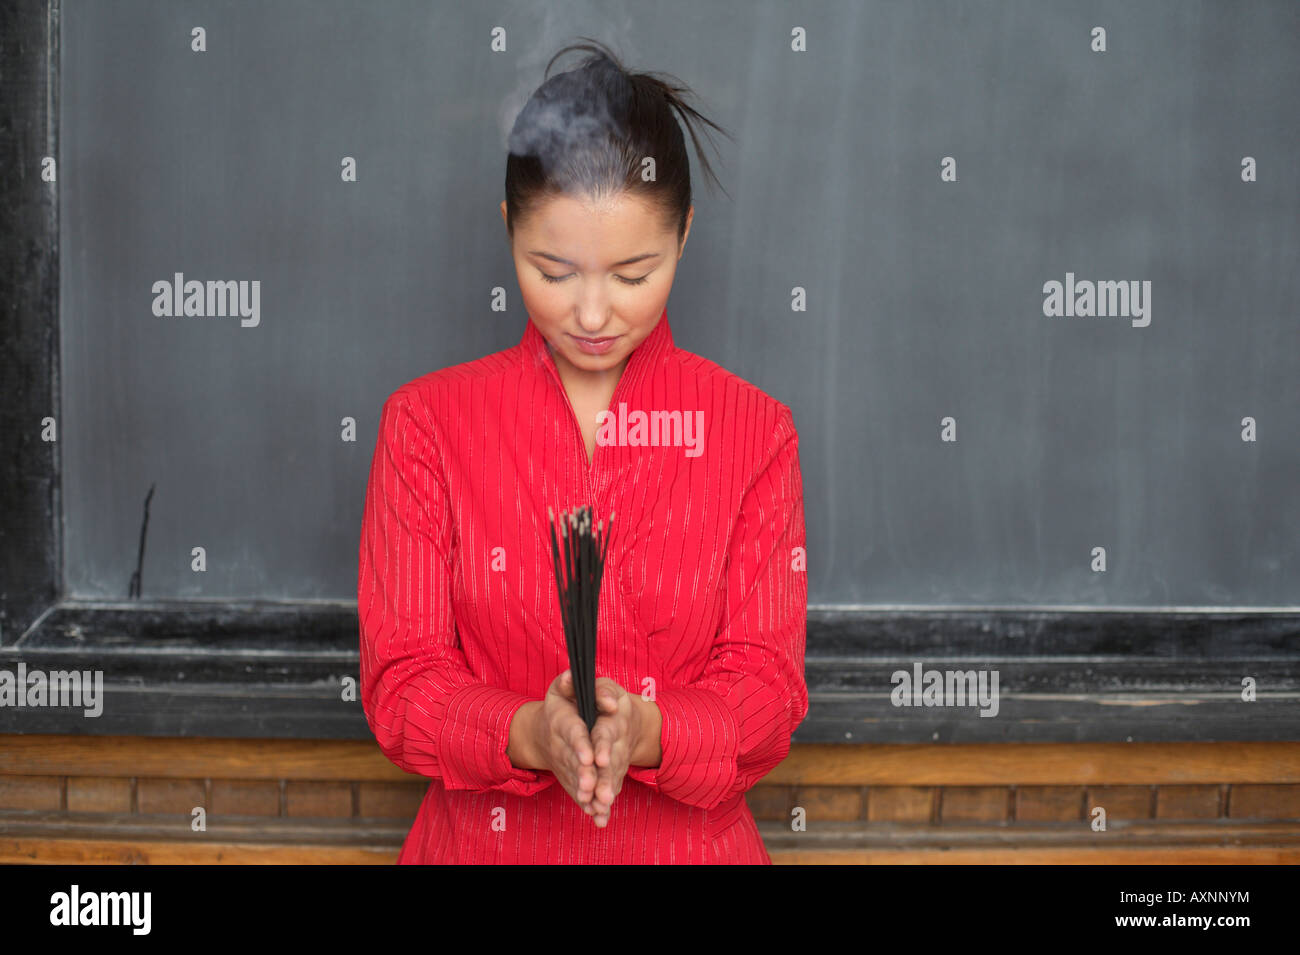 Asian woman is holding chopsticks in front of a blackboard - Stock Image